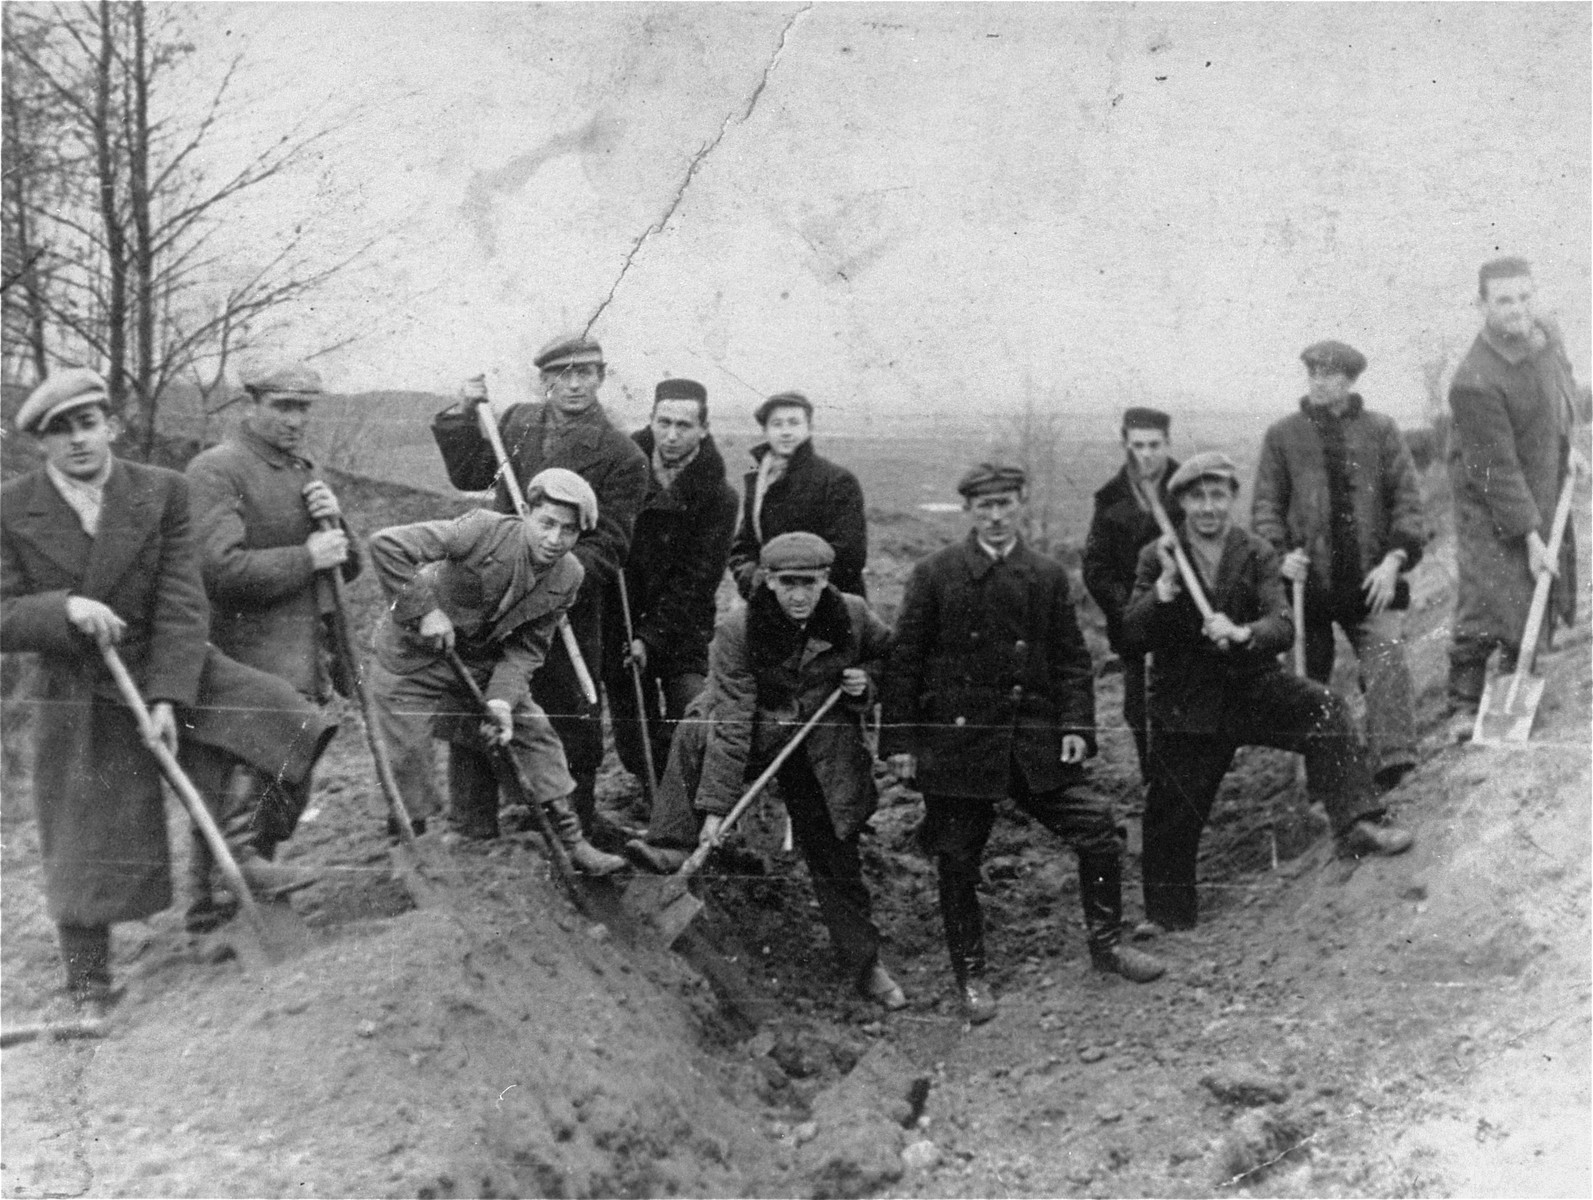 Jewish men from the Kozienice ghetto drain a swamp in the nearby village of Wolka.  Among those pictured is Mendel Sirota (far left).   Dovid Silberberg (fourth from left).  Standing in the middle back is David Bayer.  In the front center is Bezalel Berneman.  The Polish man in the middle without a shovel was the supervisor, Rembalski.  On the far right is Scwarzberg.